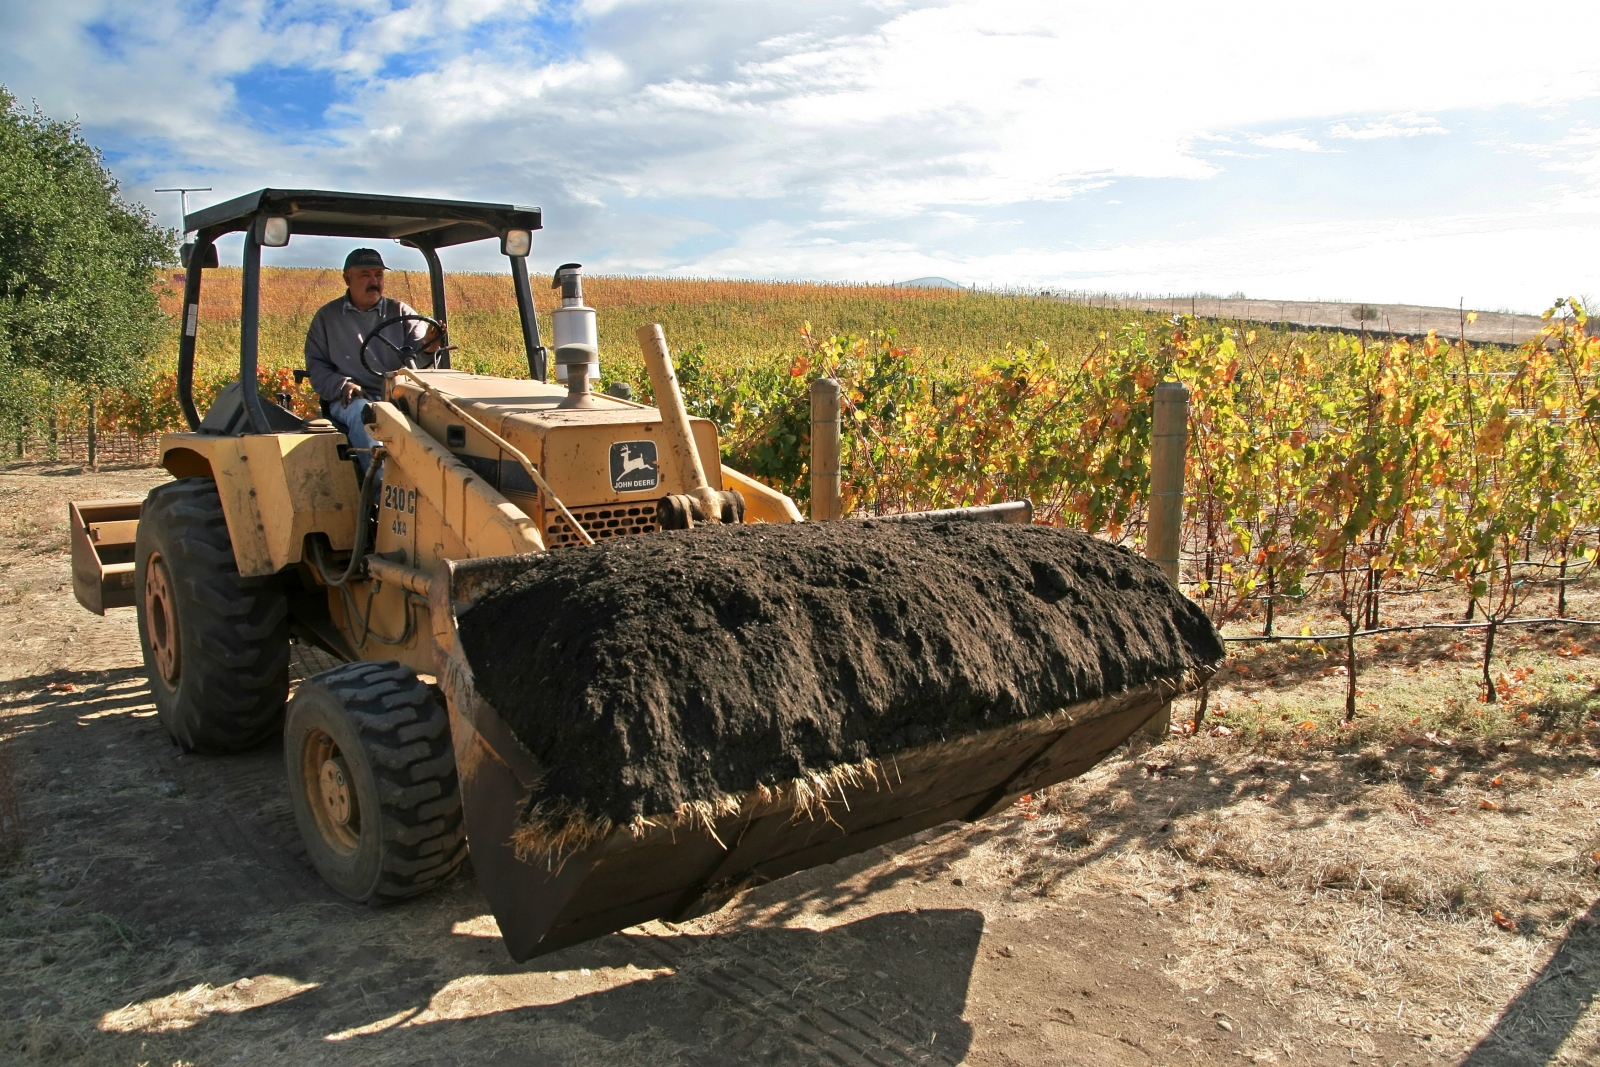 Farmer applies SF compost to crops; photo by Larry Strong, courtesy Recology